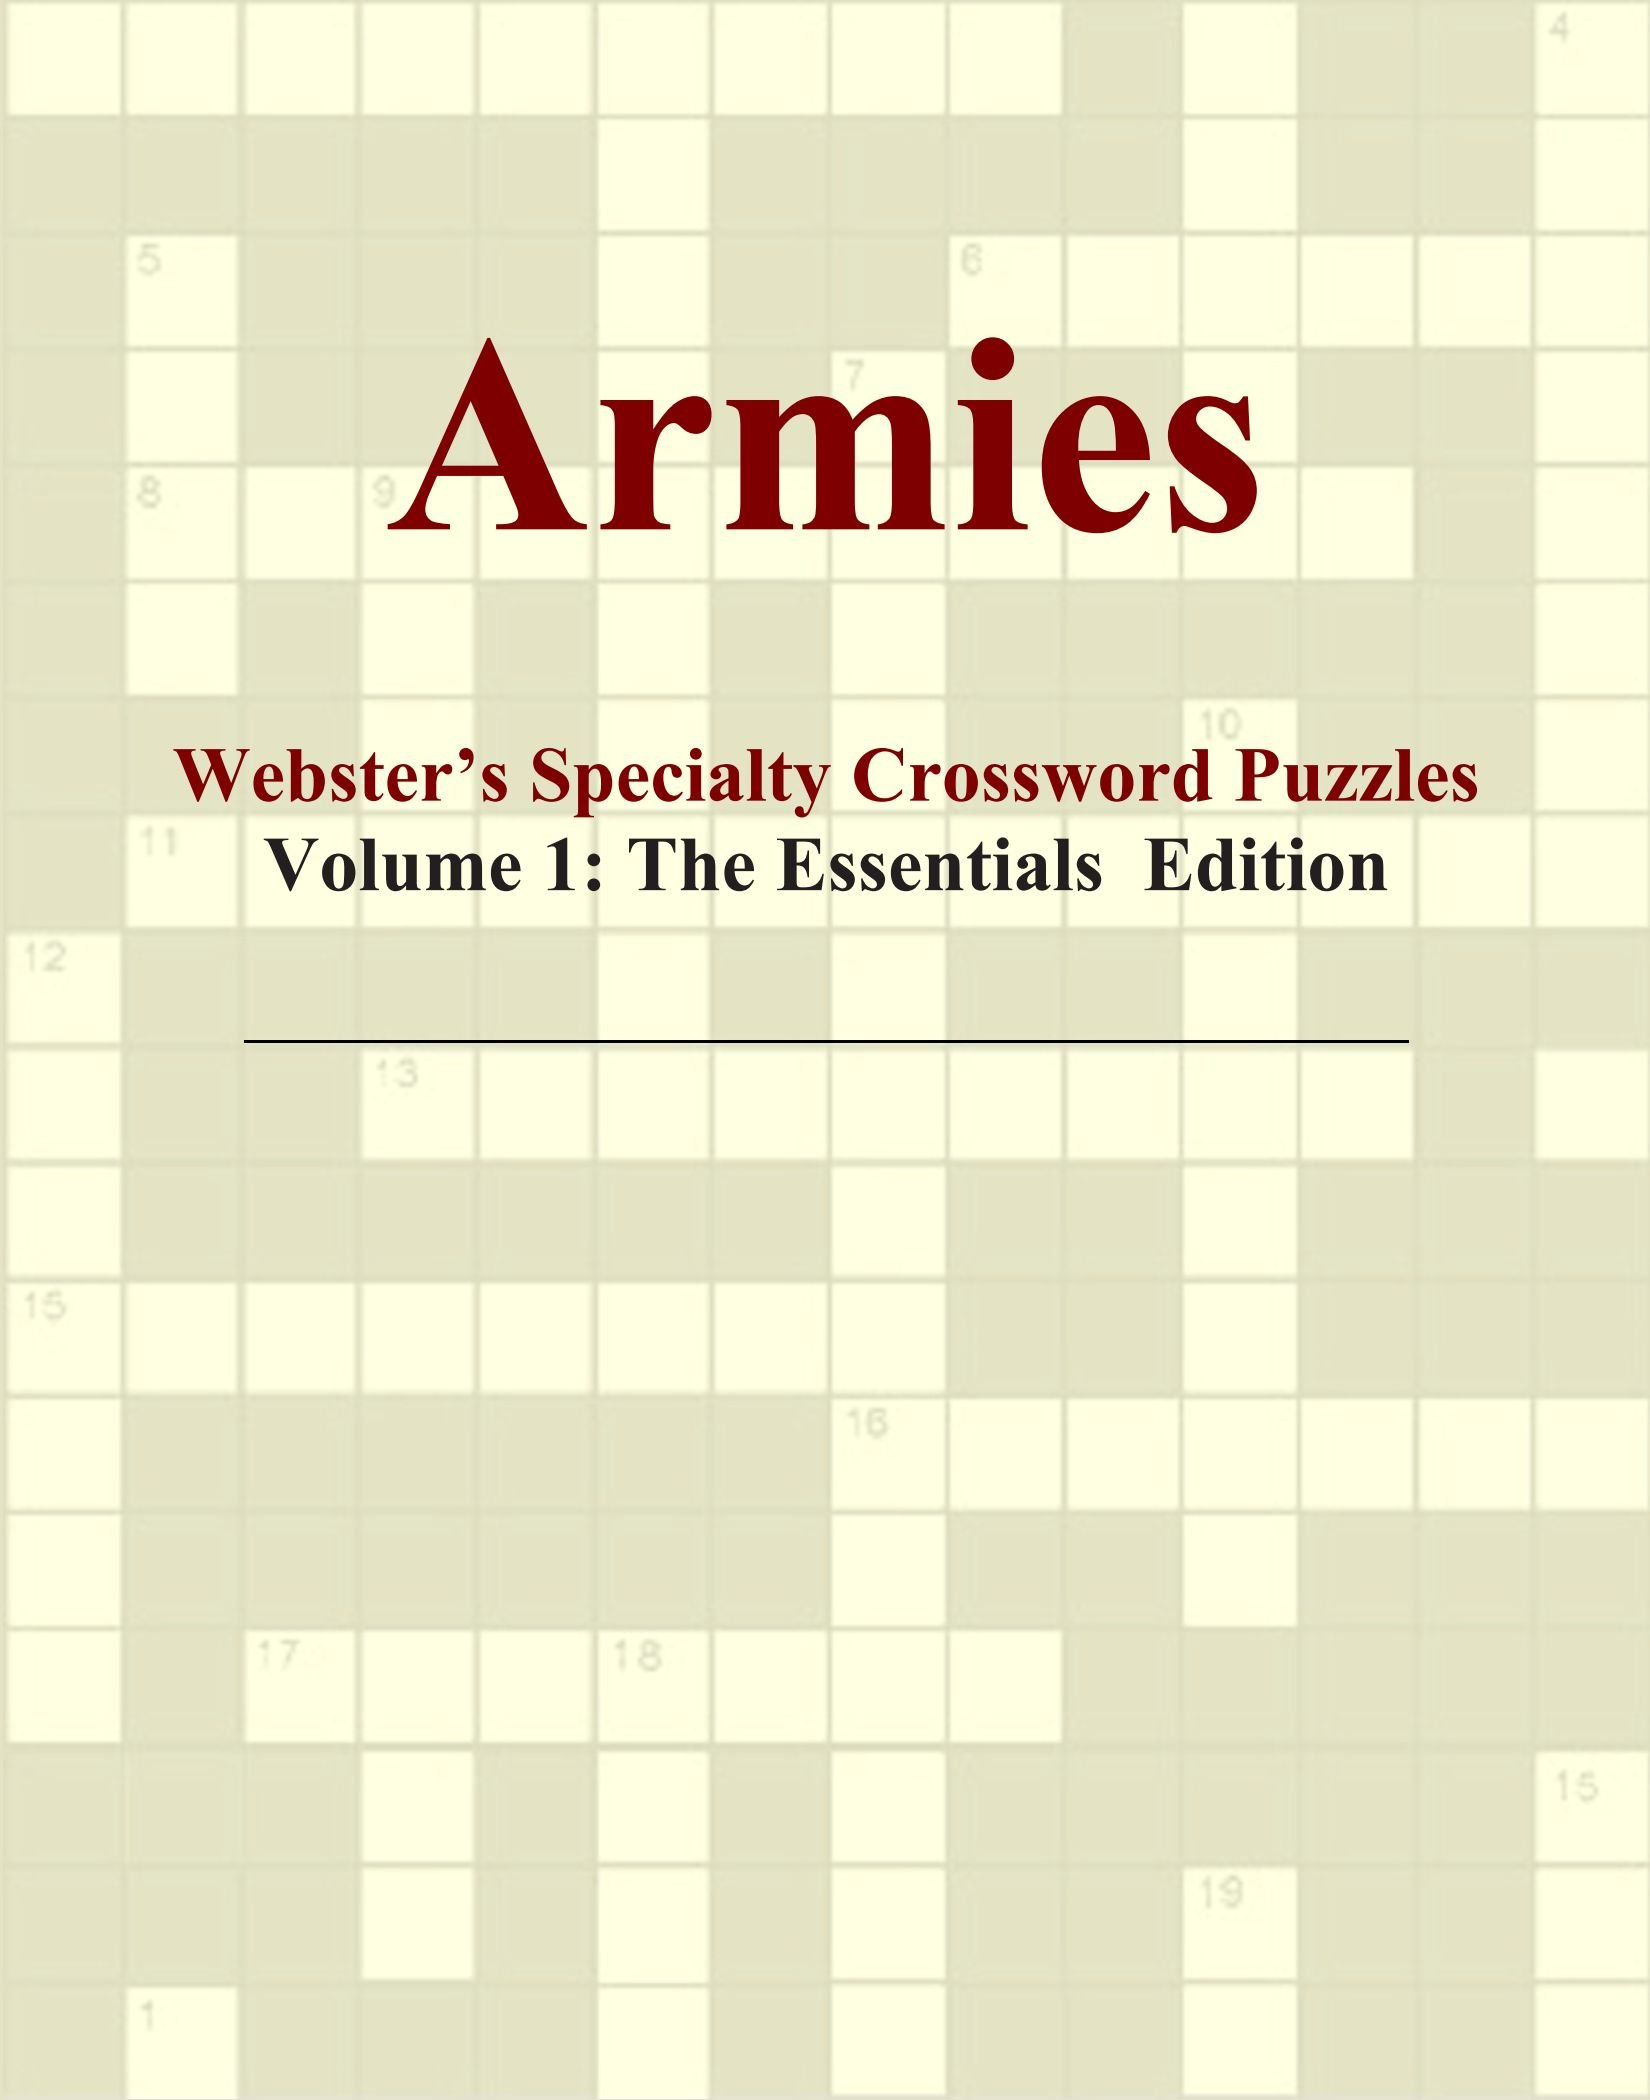 Armies - Webster's Specialty Crossword Puzzles, Volume 1: The Essentials Edition ebook